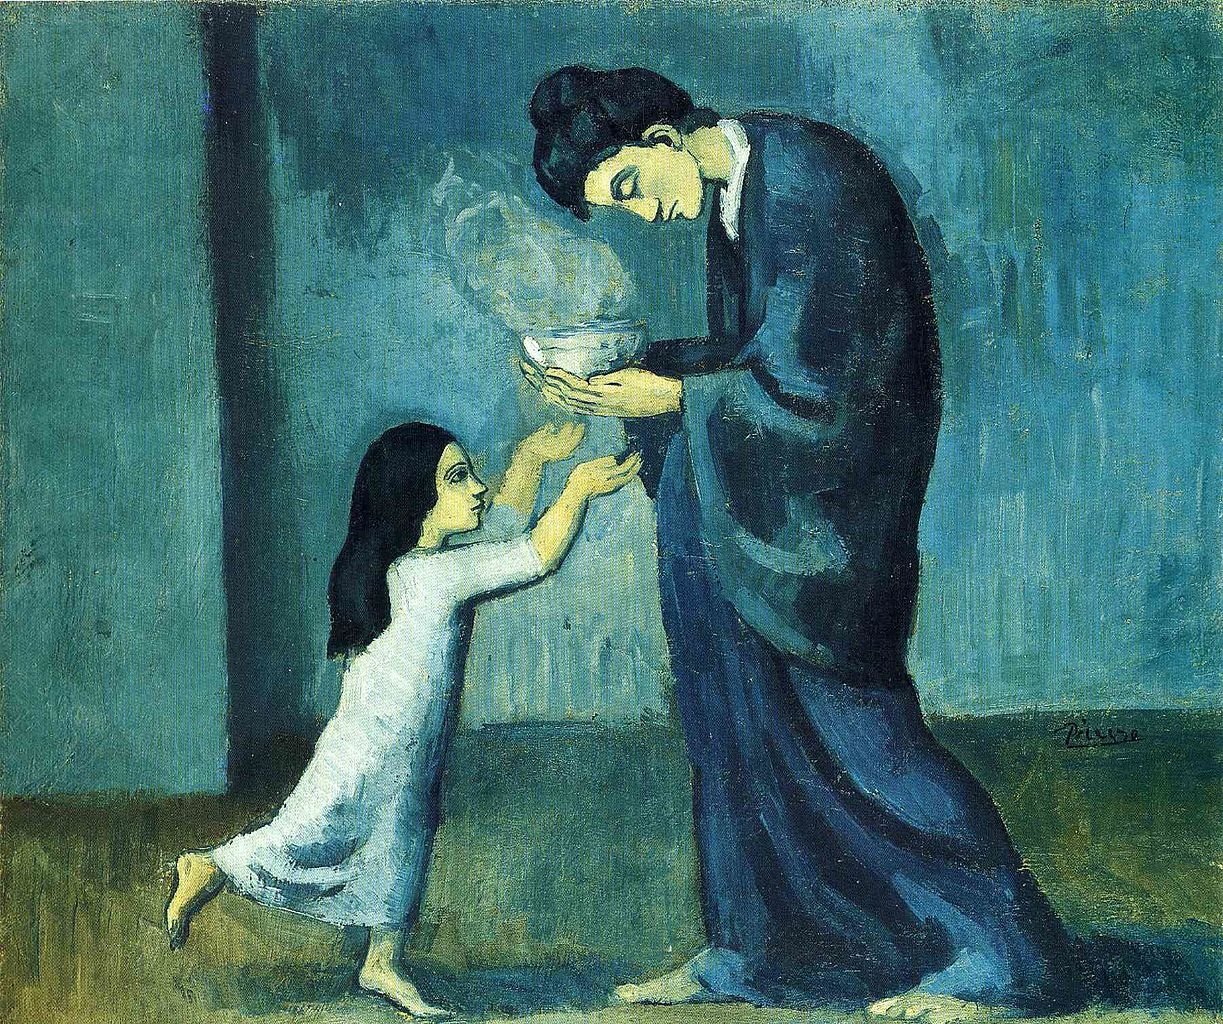 Pablo Picasso 1902 03 La soupe The soup oil on canvas 38.5 x 46.0 cm Art Gallery of Ontario Toronto Canada